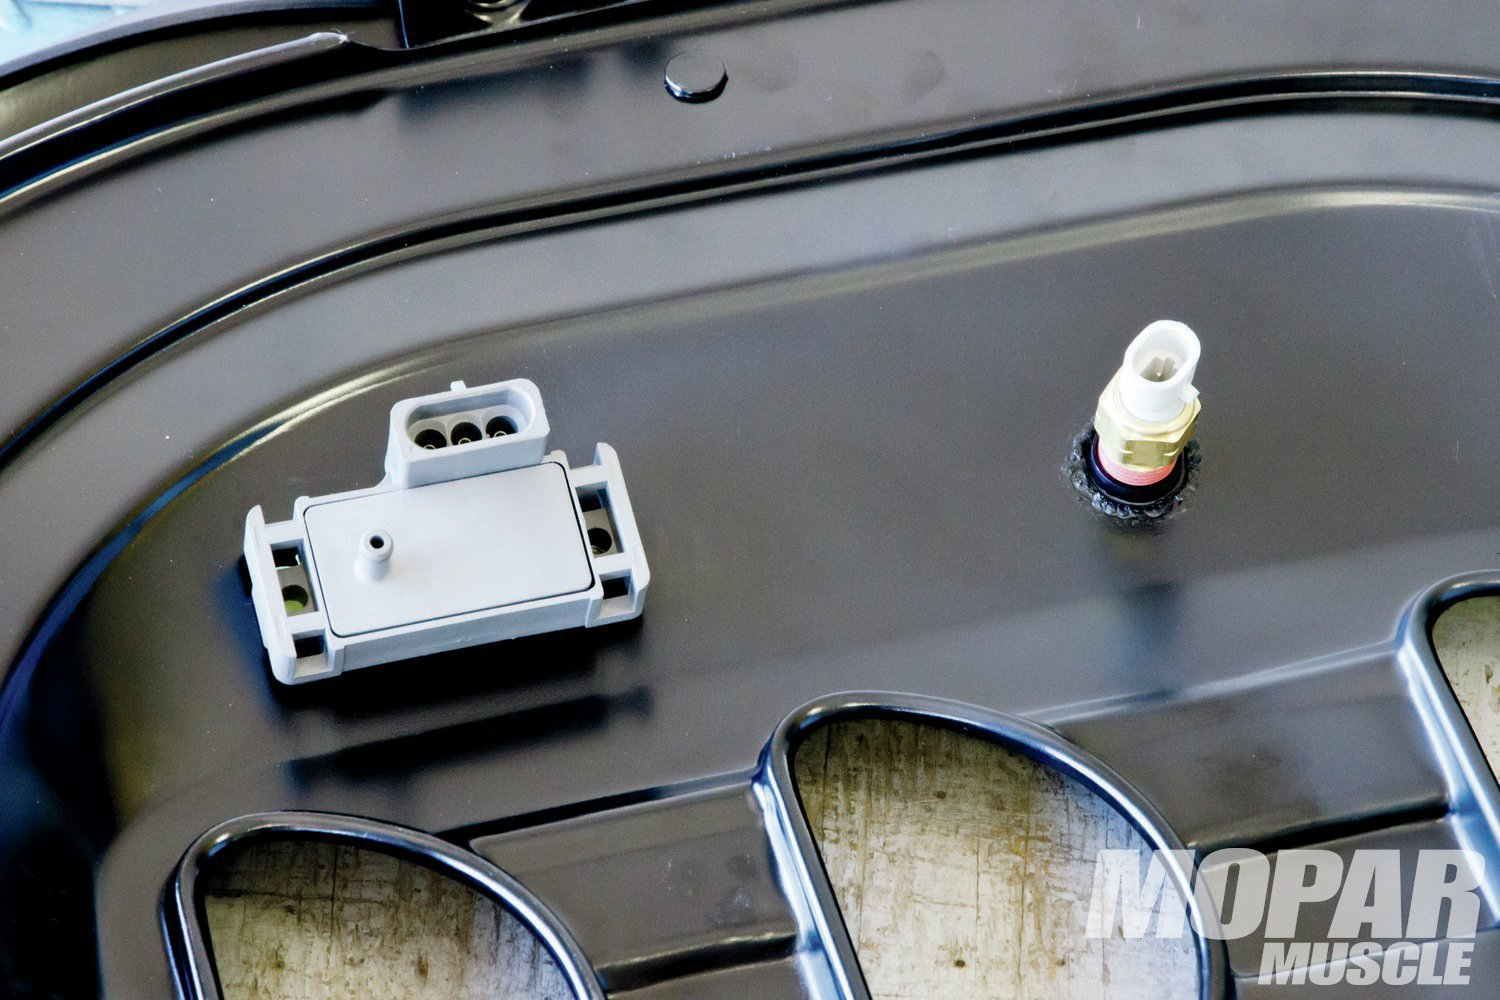 09 In this application, the MAP and air temp sensors are mounted under the air cleaner base.